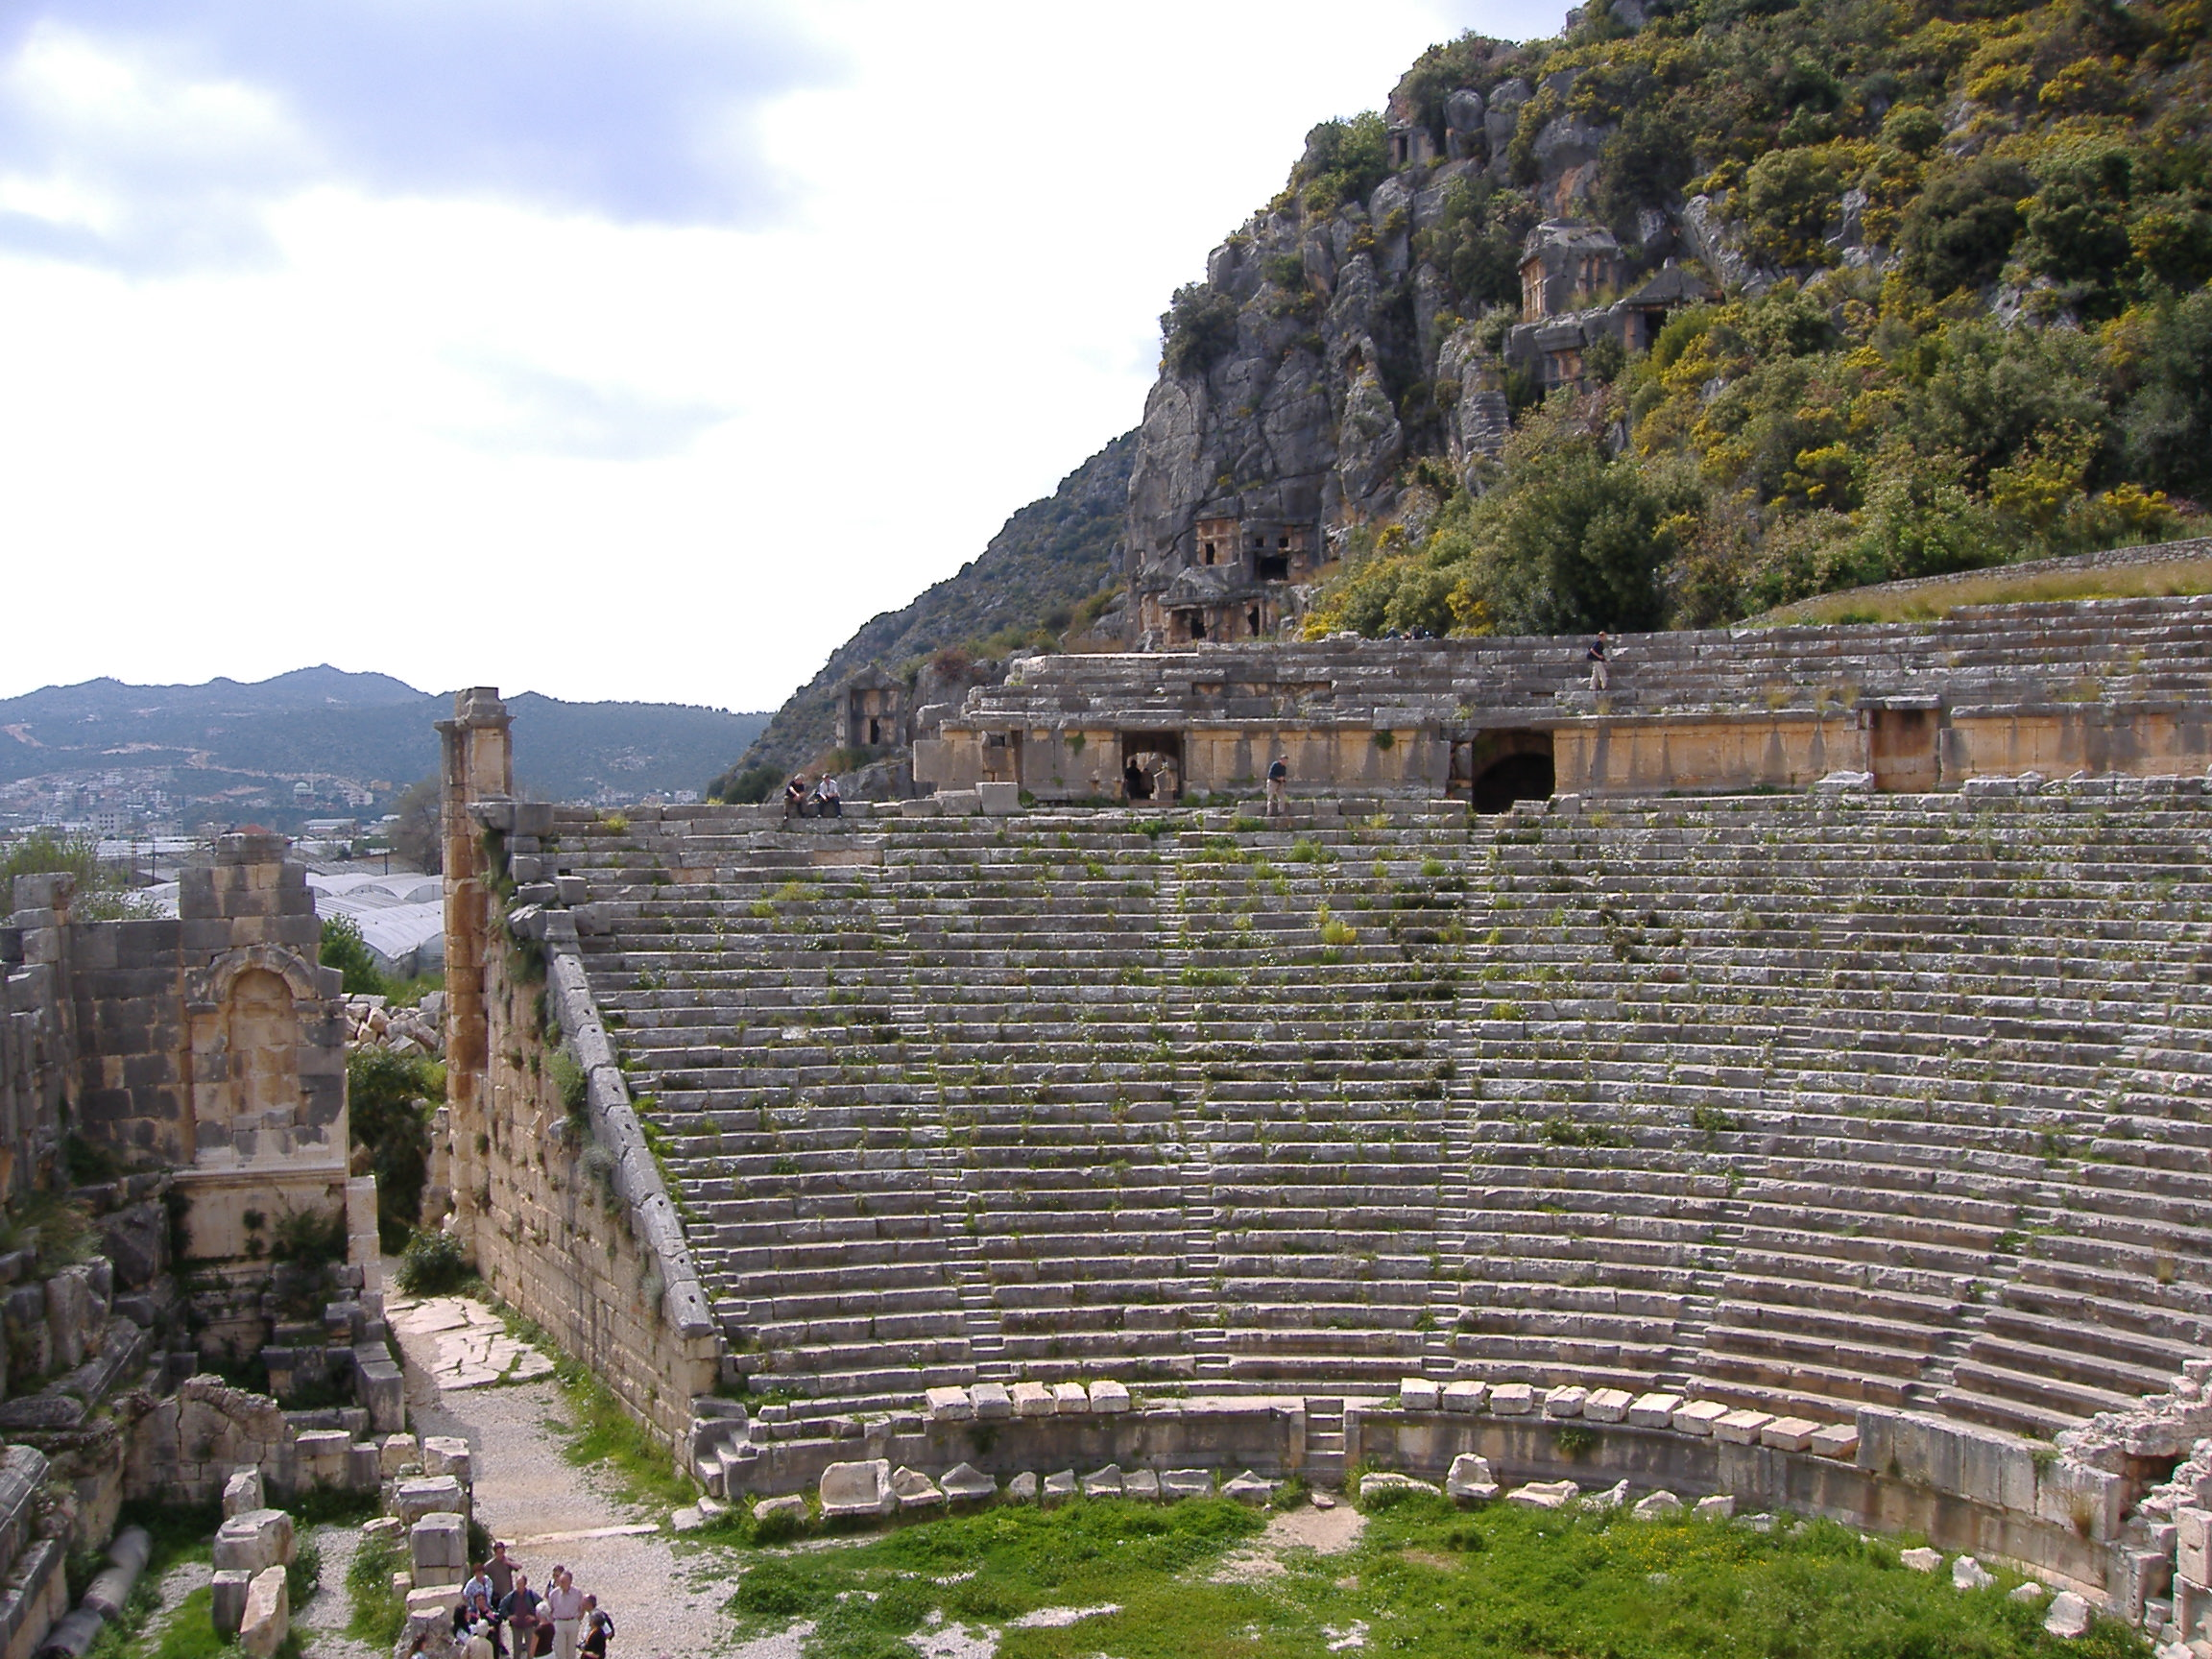 File:Myra Theatre.JPG - Wikimedia Commons